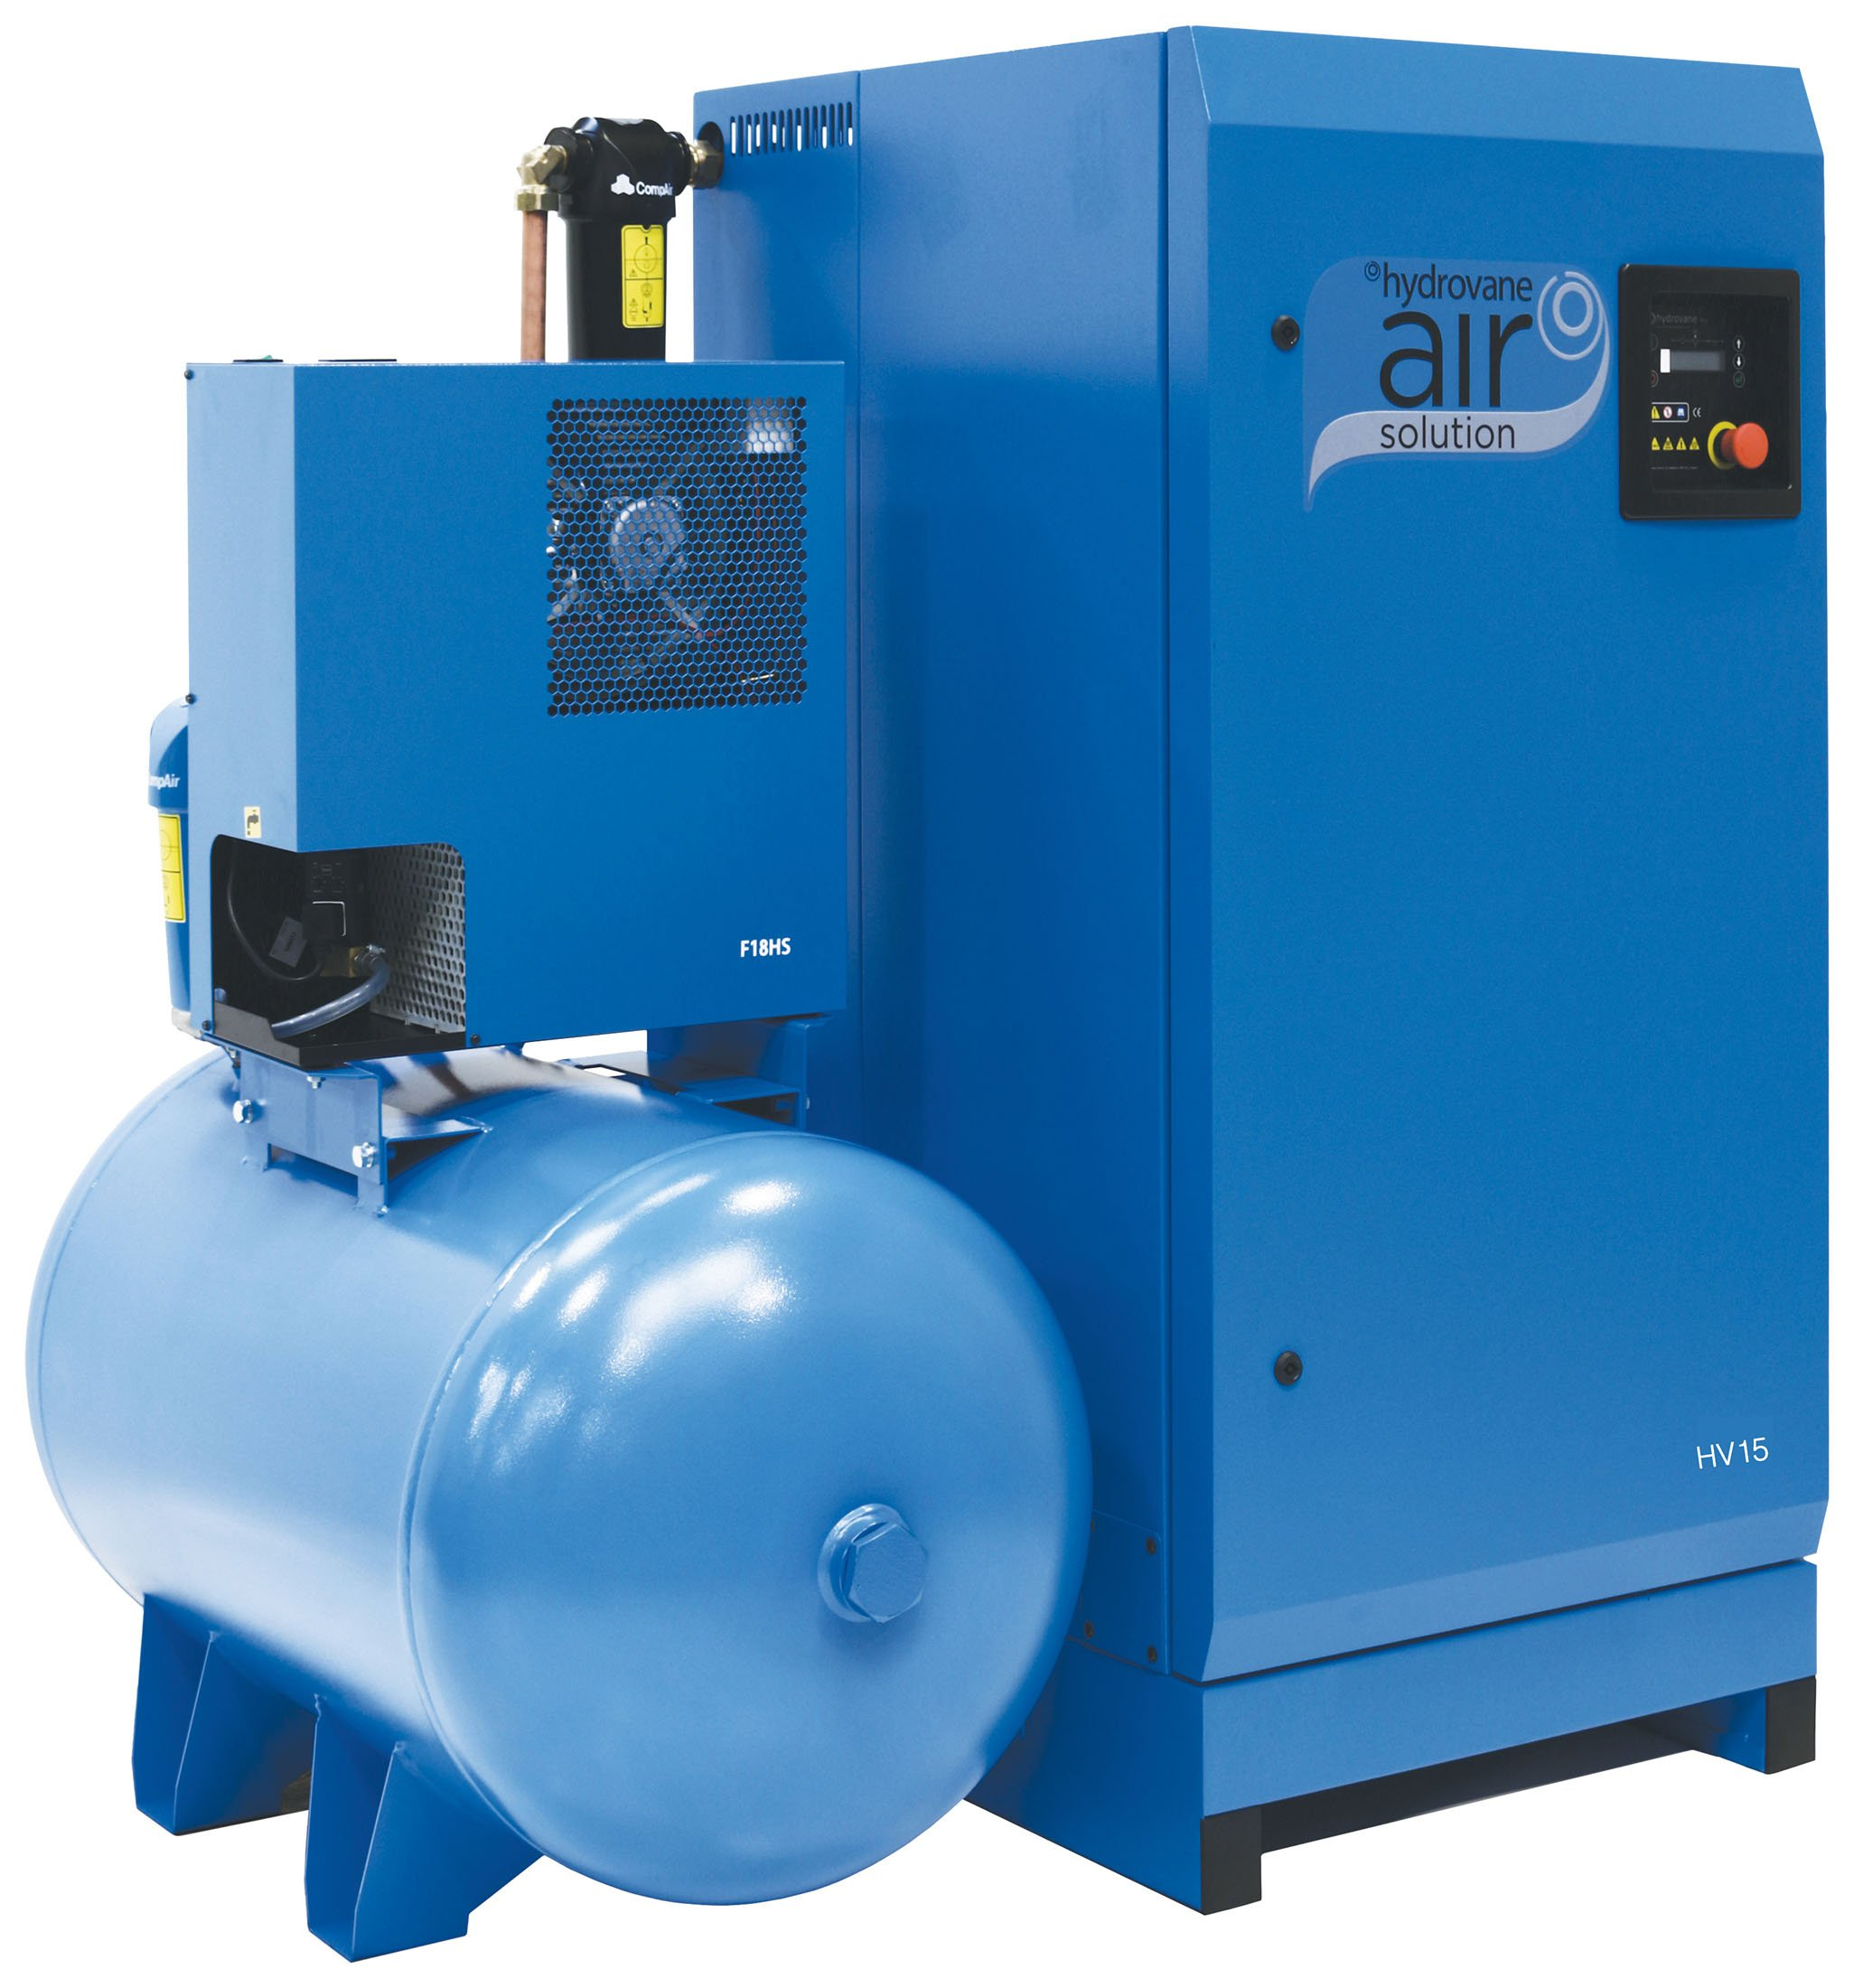 Midlands UK supplier of Hydrovane HV15AERD air compressor